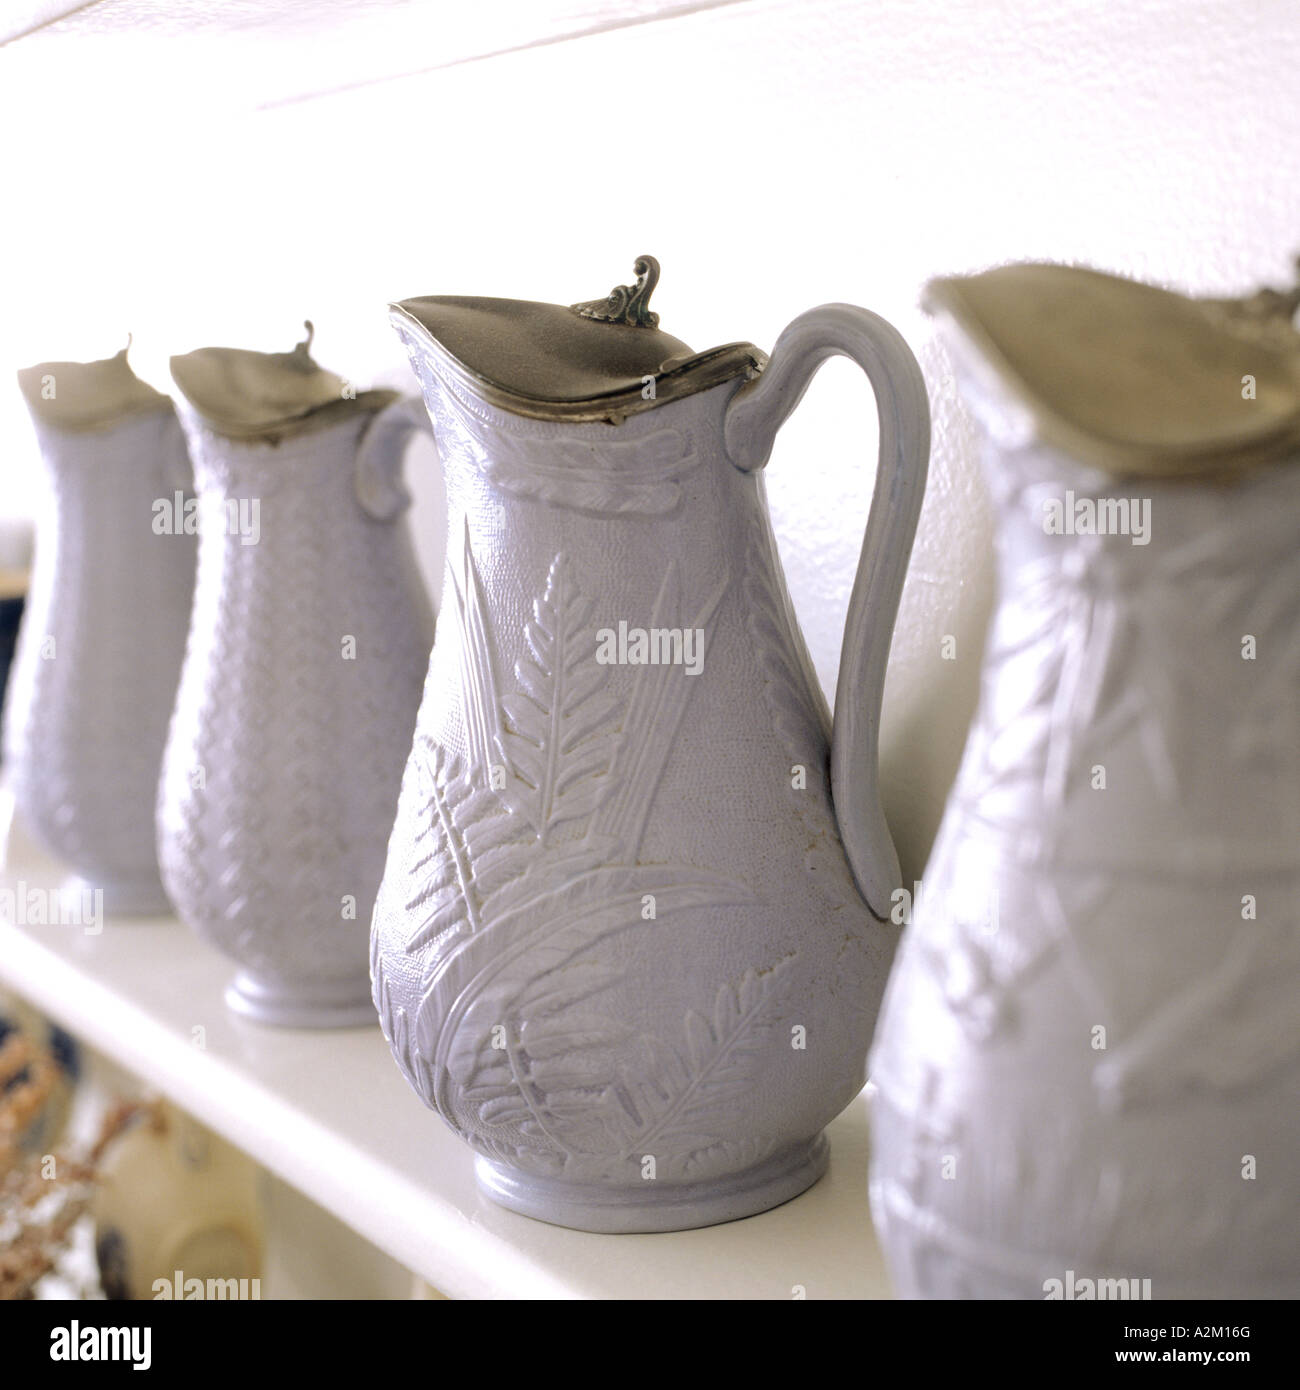 collection of pale blue china jugs with silver lids on a shelf - Stock Image